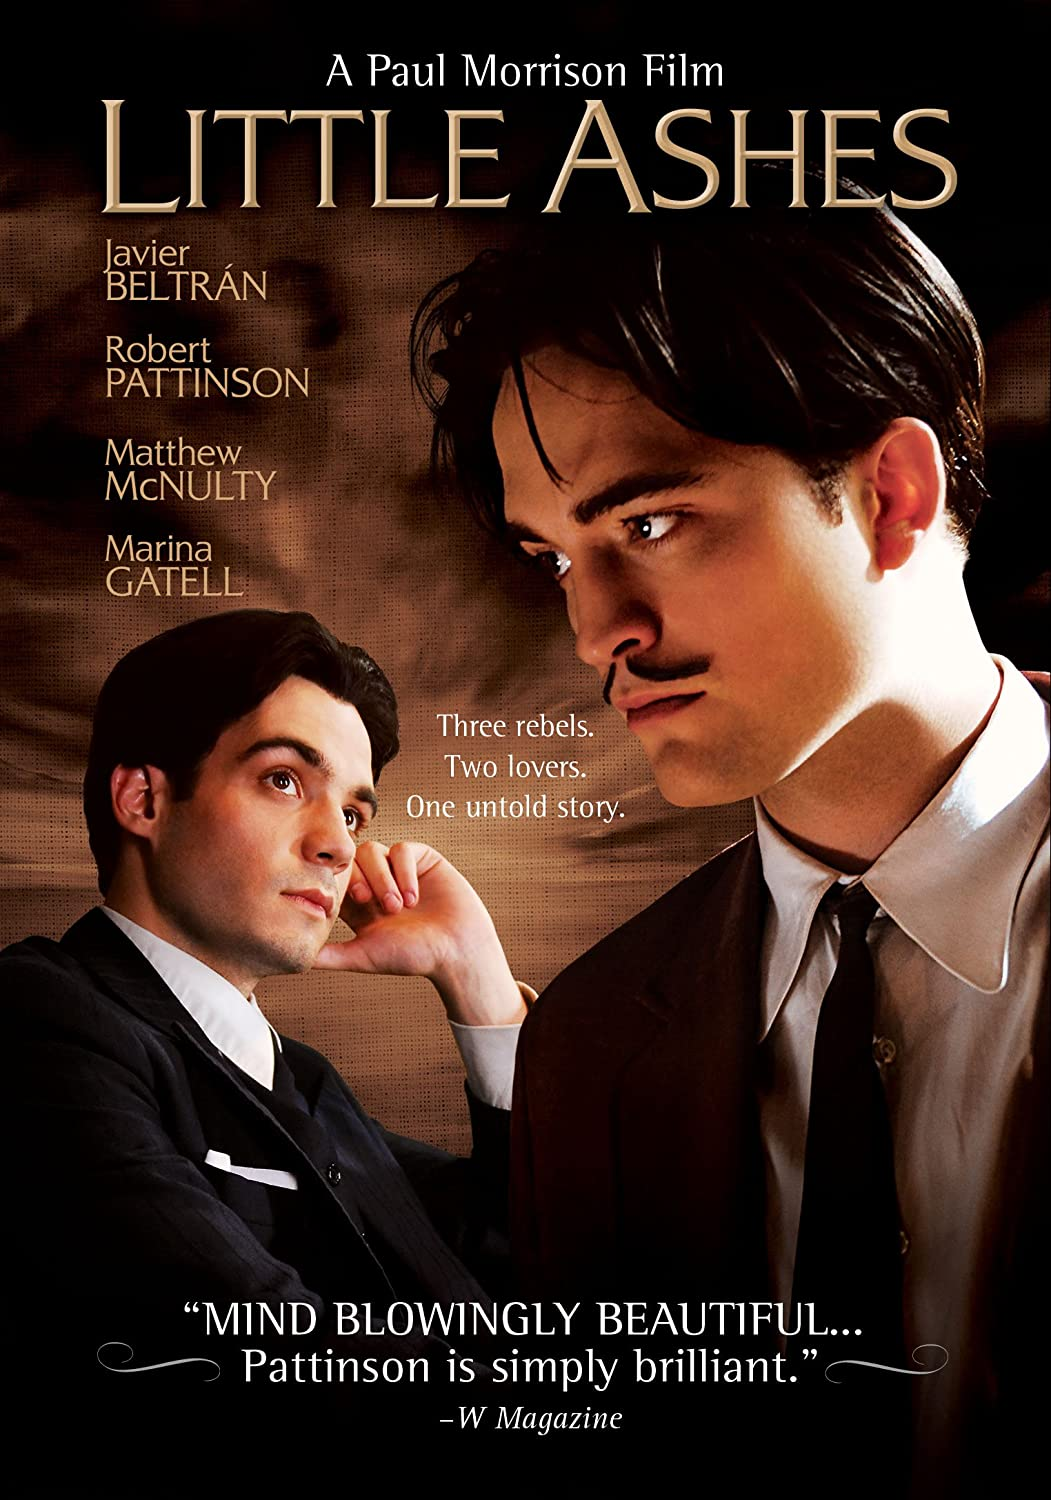 Little Ashes Robert Pattinson Javier Beltrán Matthew McNulty Marina Gatell